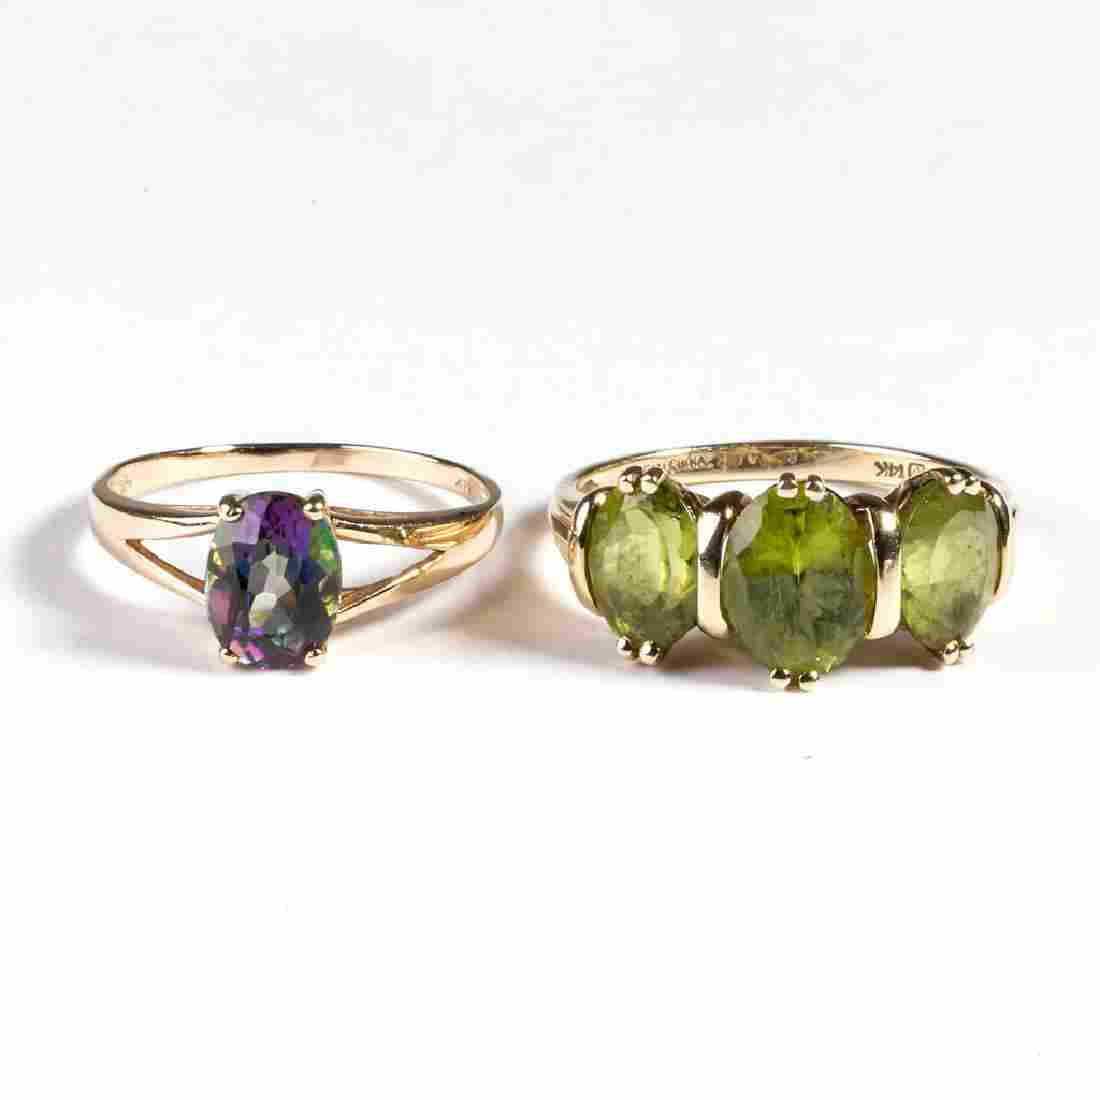 VINTAGE LADY'S 14K GOLD AND GEMSTONE RINGS, LOT OF TWO